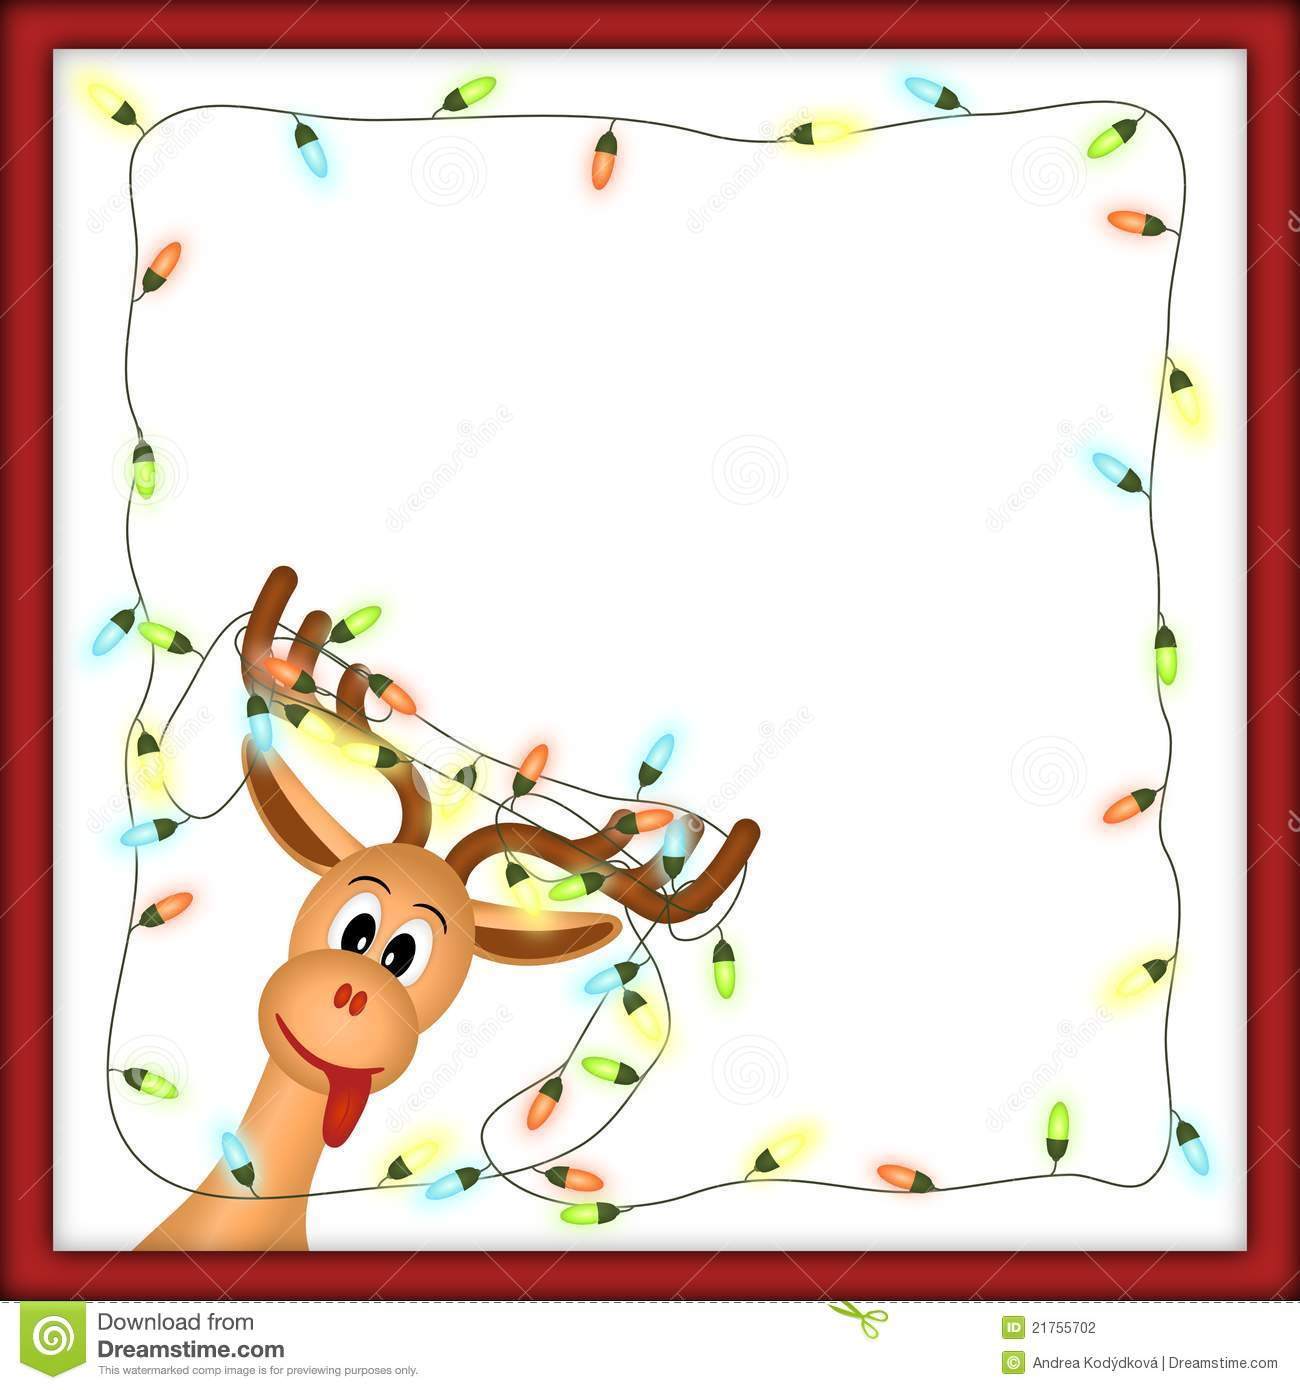 Funny Reindeer With Christmas Lights Tangled In Antlers In Red Frame